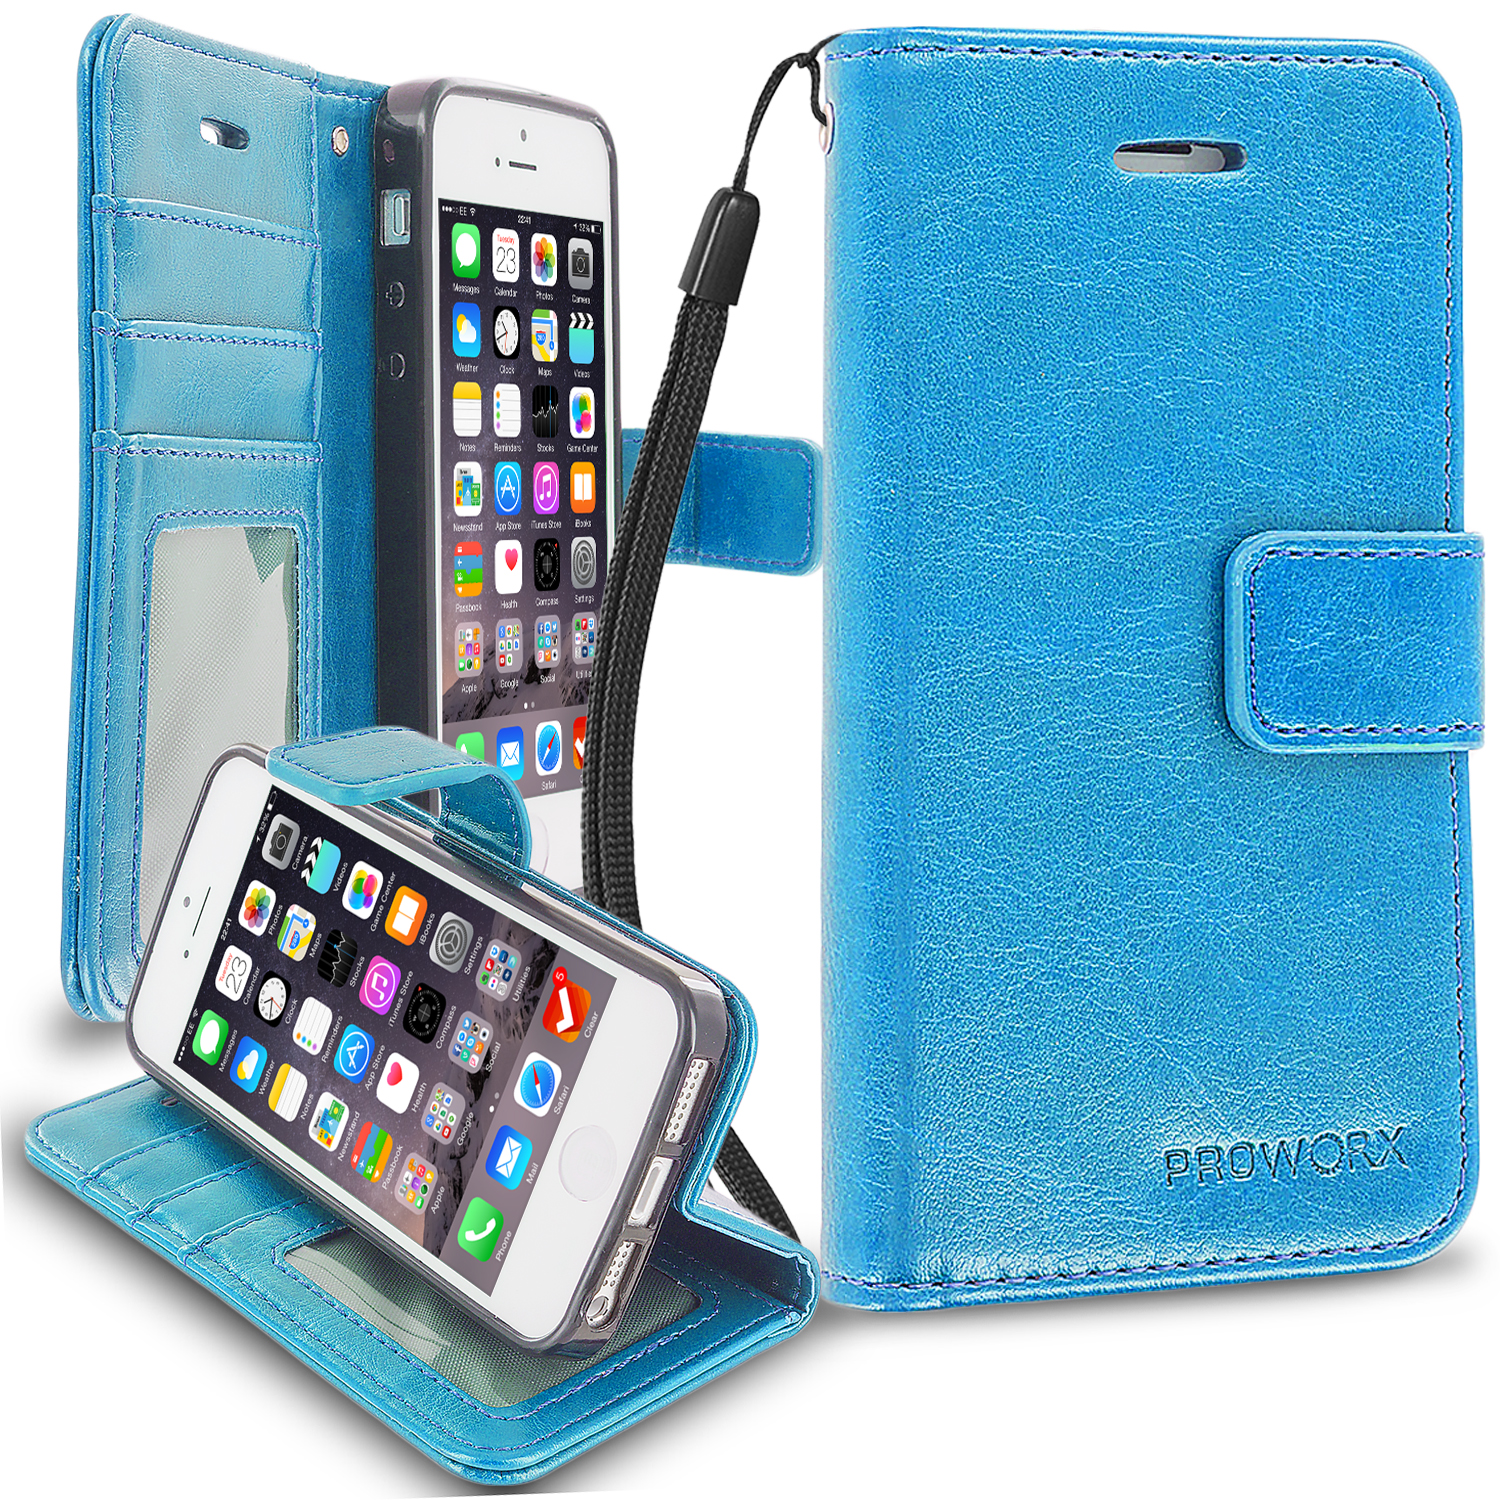 Apple iPhone 5/5S/SE Baby Blue ProWorx Wallet Case Luxury PU Leather Case Cover With Card Slots & Stand